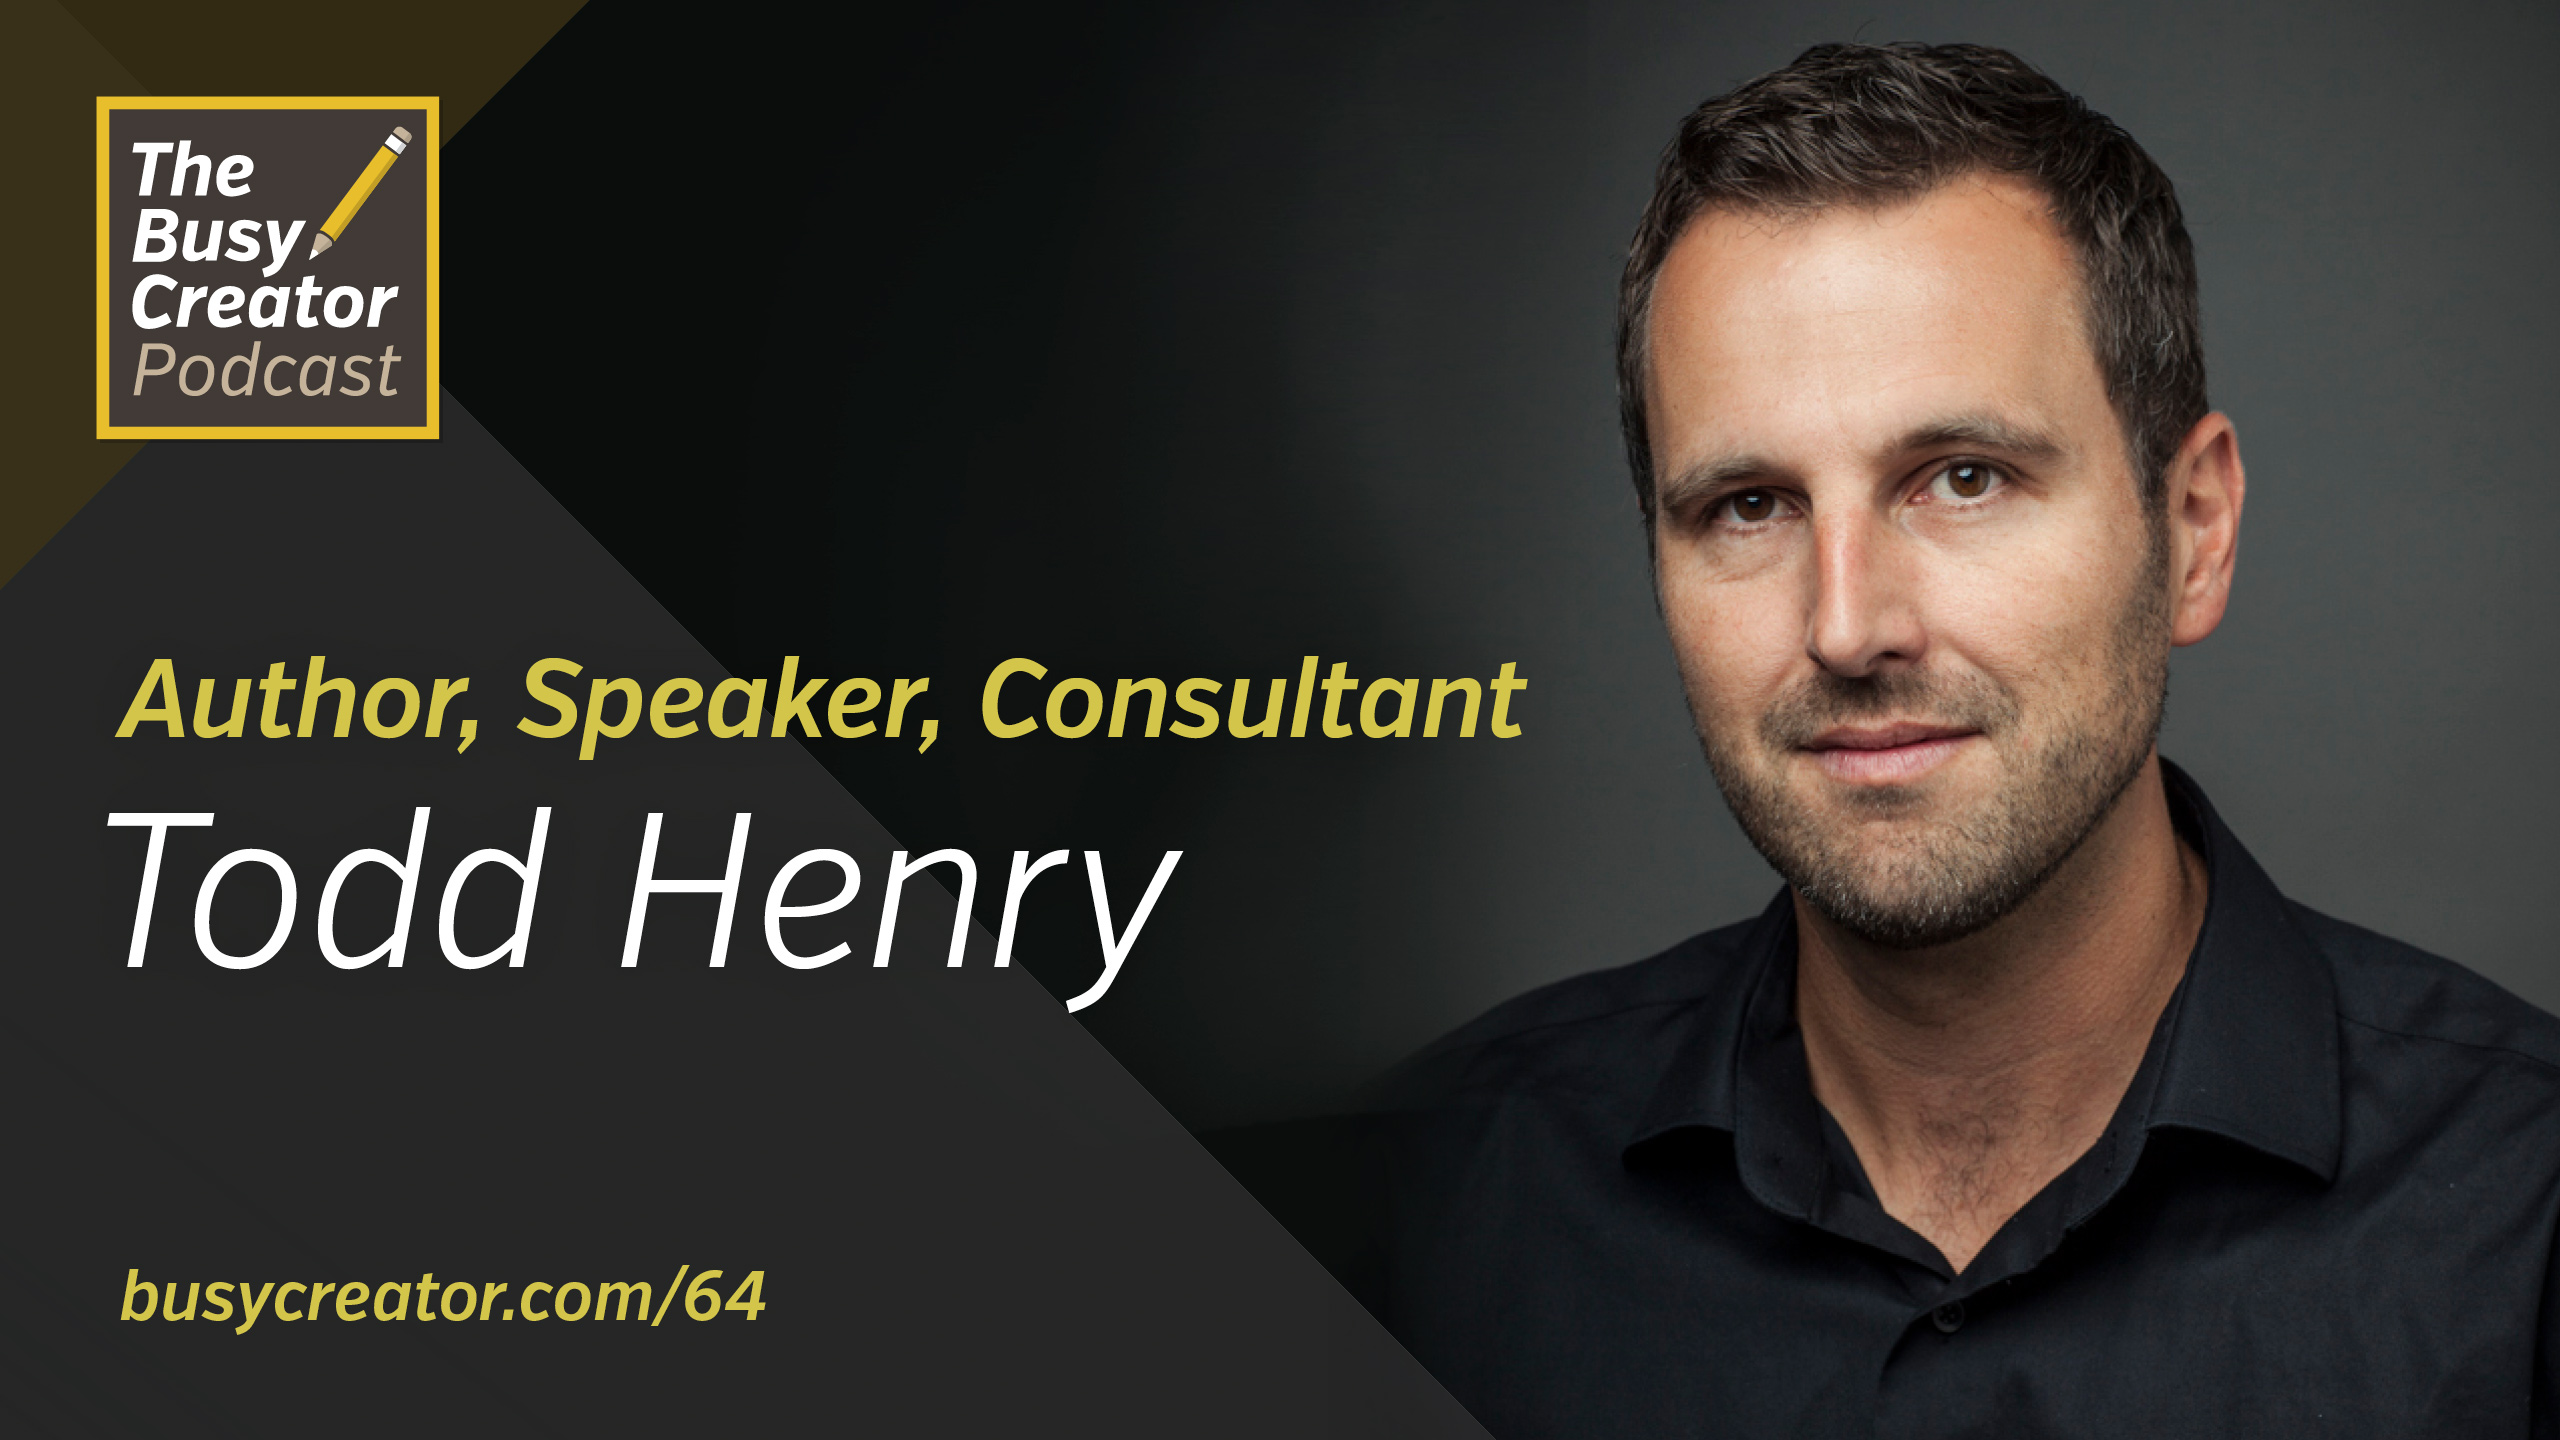 Todd Henry Returns to Discuss Significance, Vision, and Competence for Creative Pros